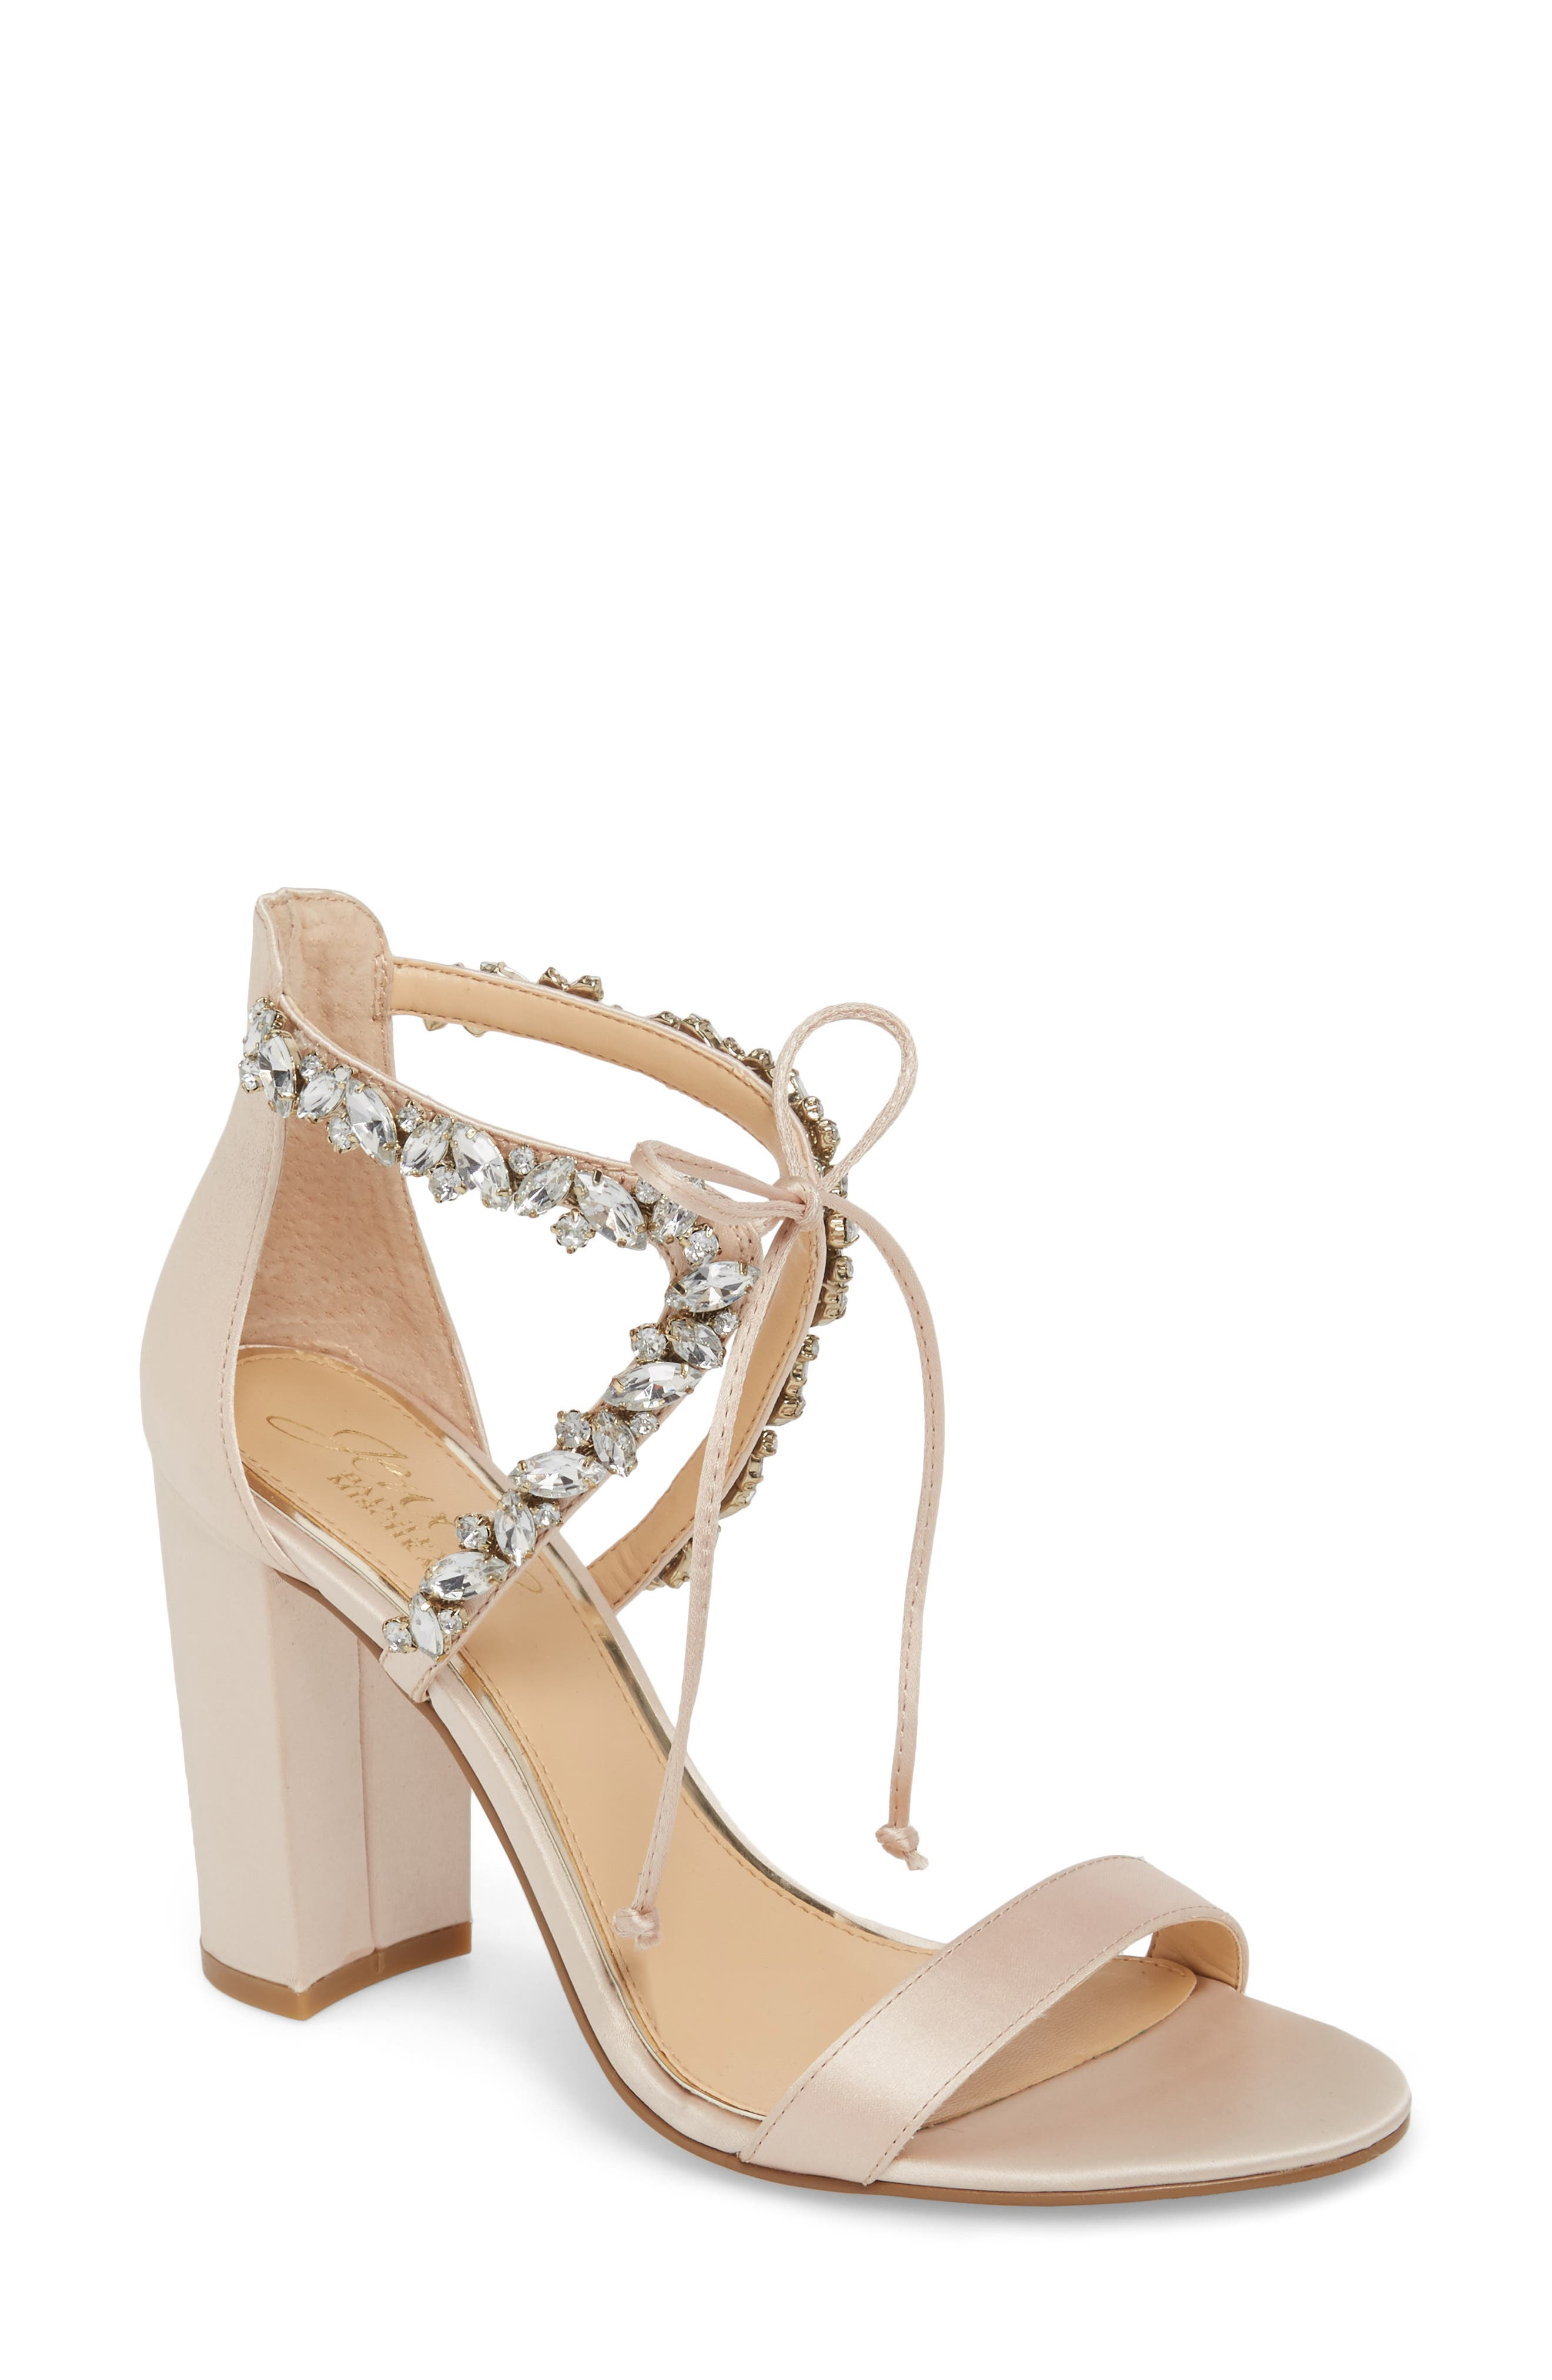 JEWEL BADGLEY MISCHKA,                             Thamar Embellished Sandal,                             Main thumbnail 1, color,                             CHAMPAGNE SATIN